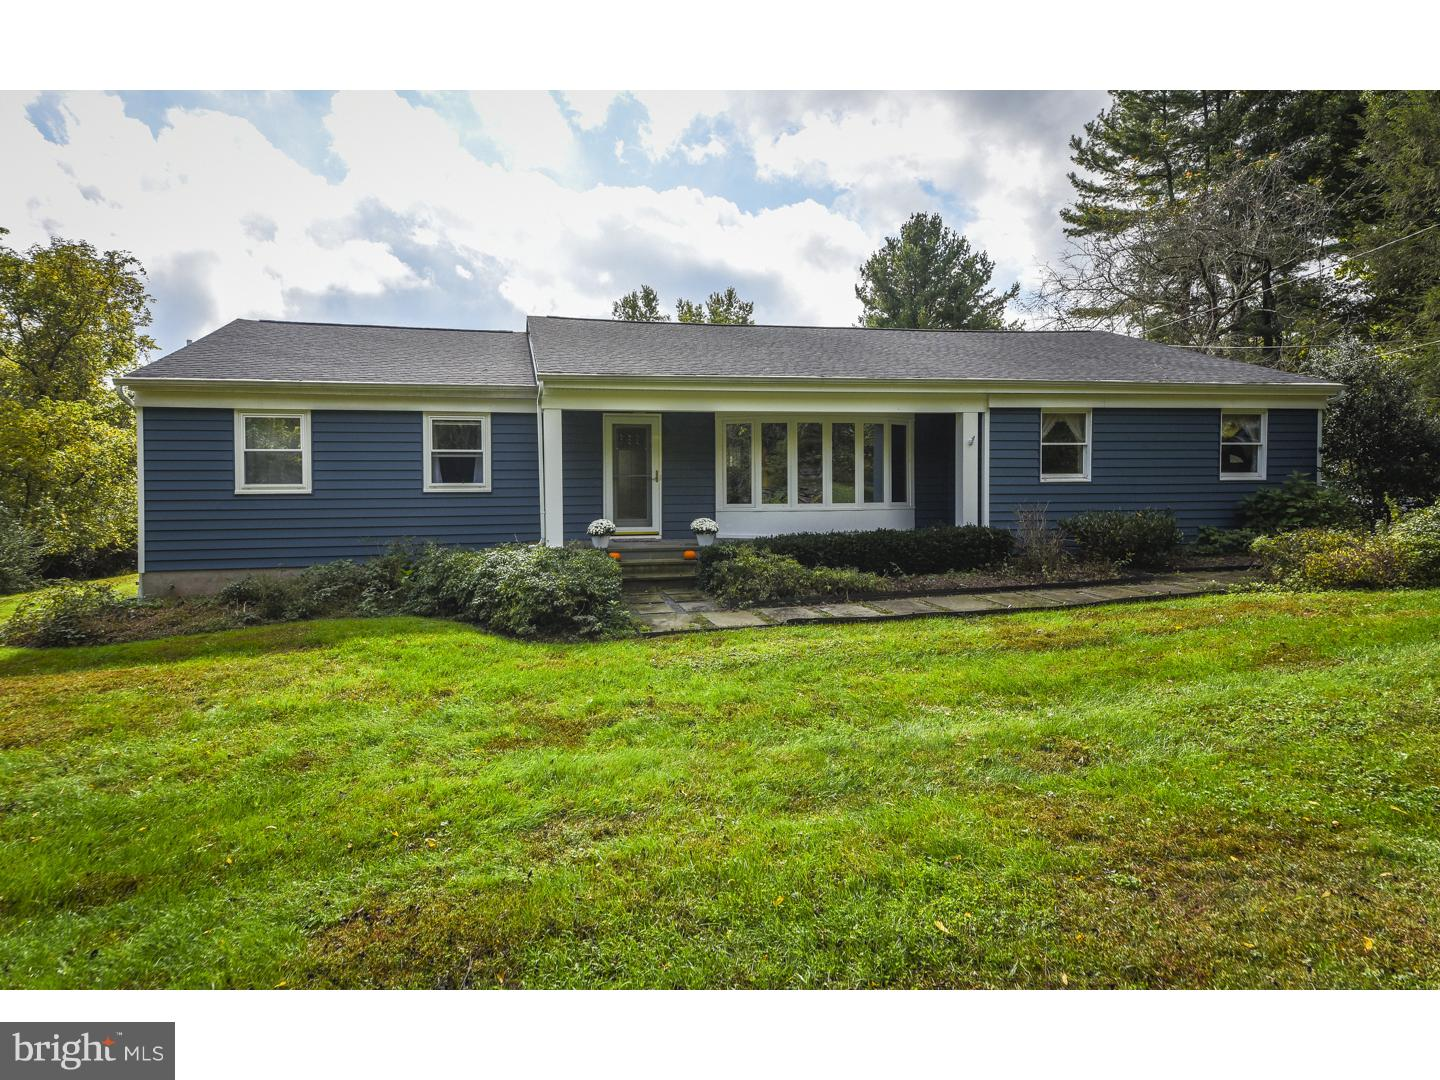 Property for Sale at 153 LAMBERTVILLE HOPEWELL Road Hopewell, New Jersey 08525 United States